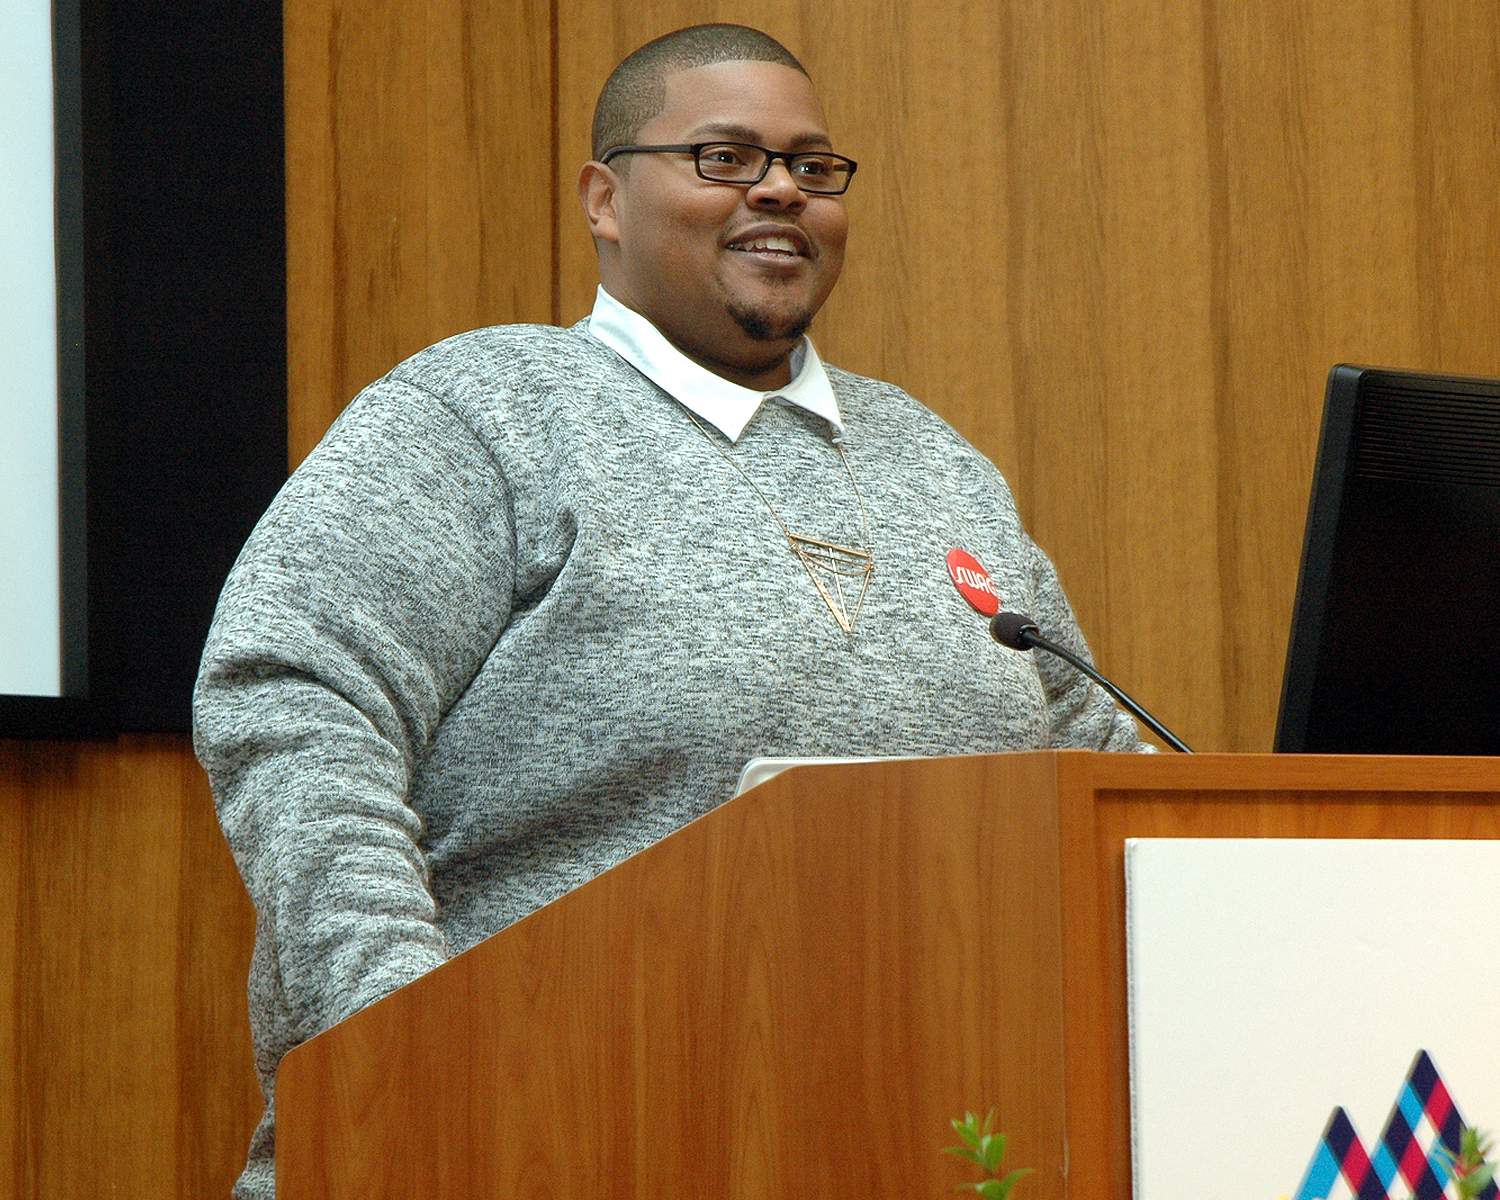 Keynote Address - Brandon Lee, Education and Training Coordinator